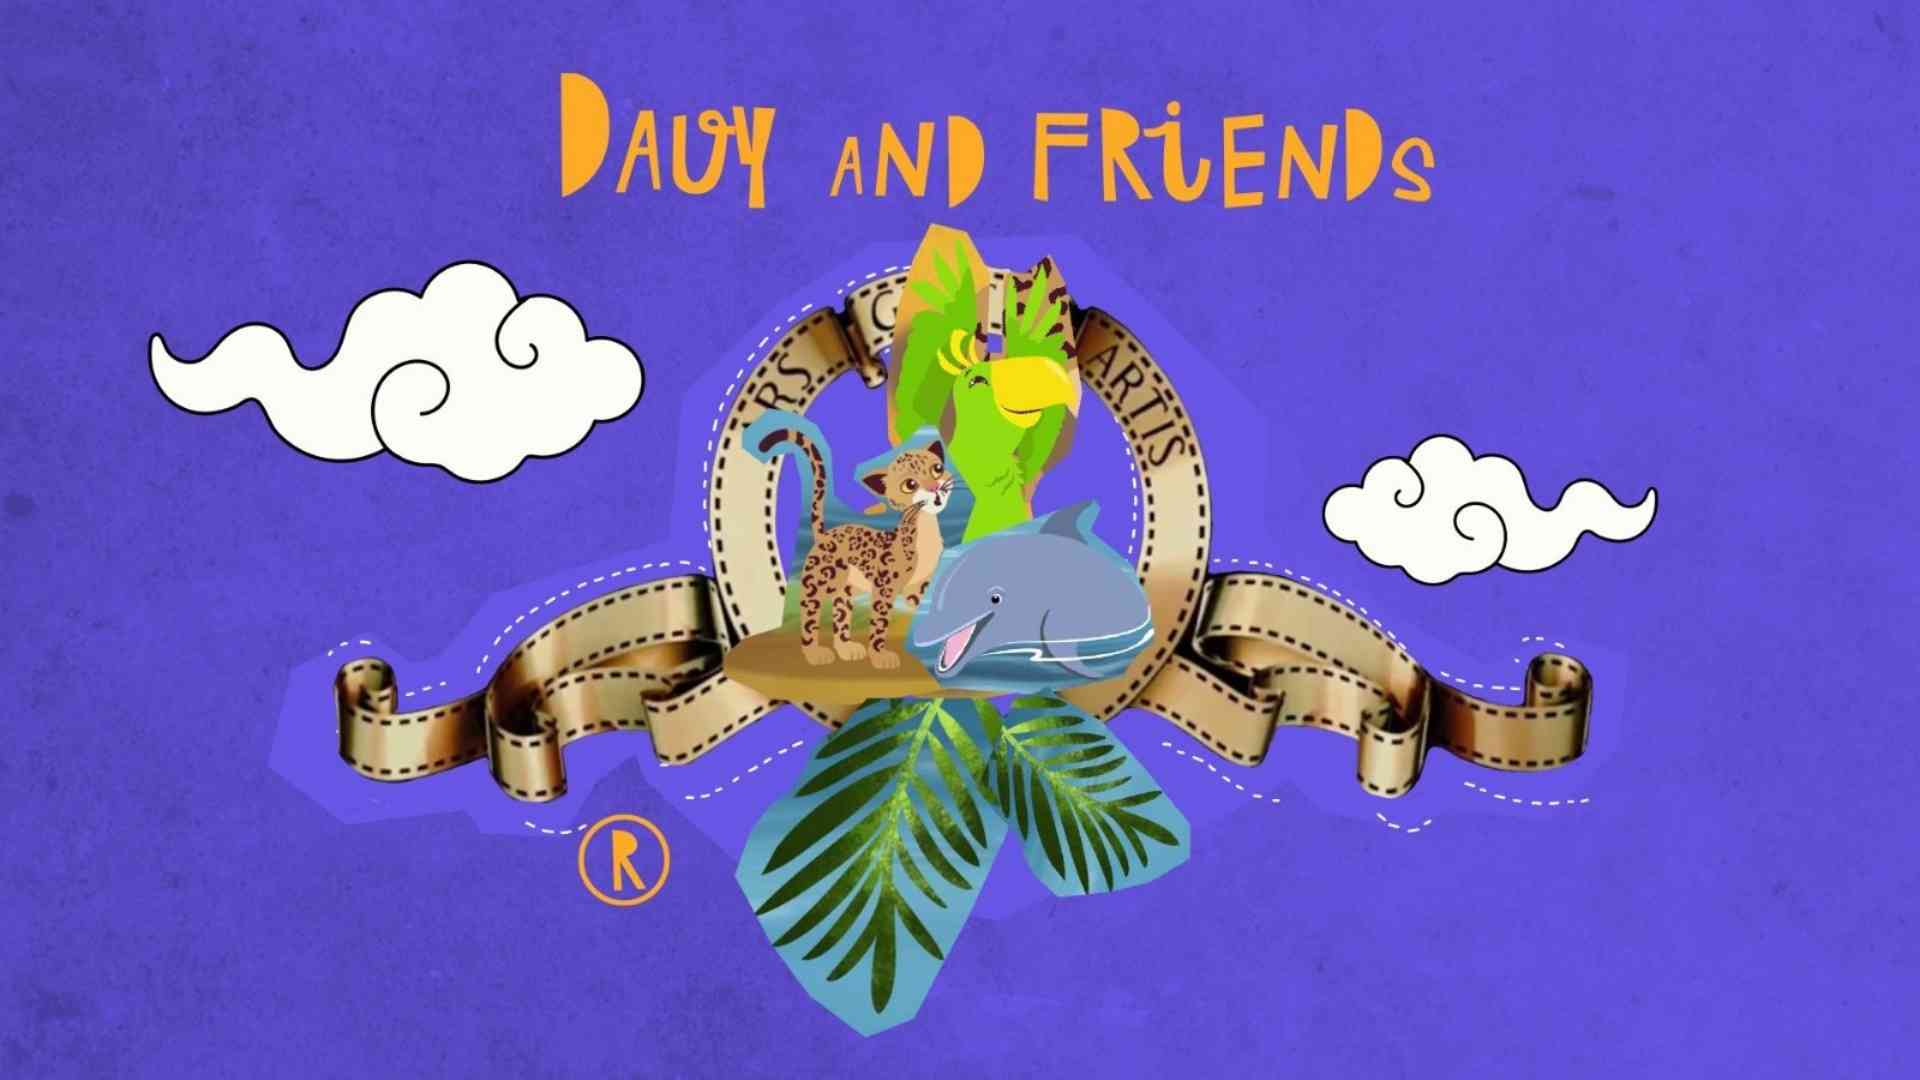 Davy & Friends - This is the trailer for the book